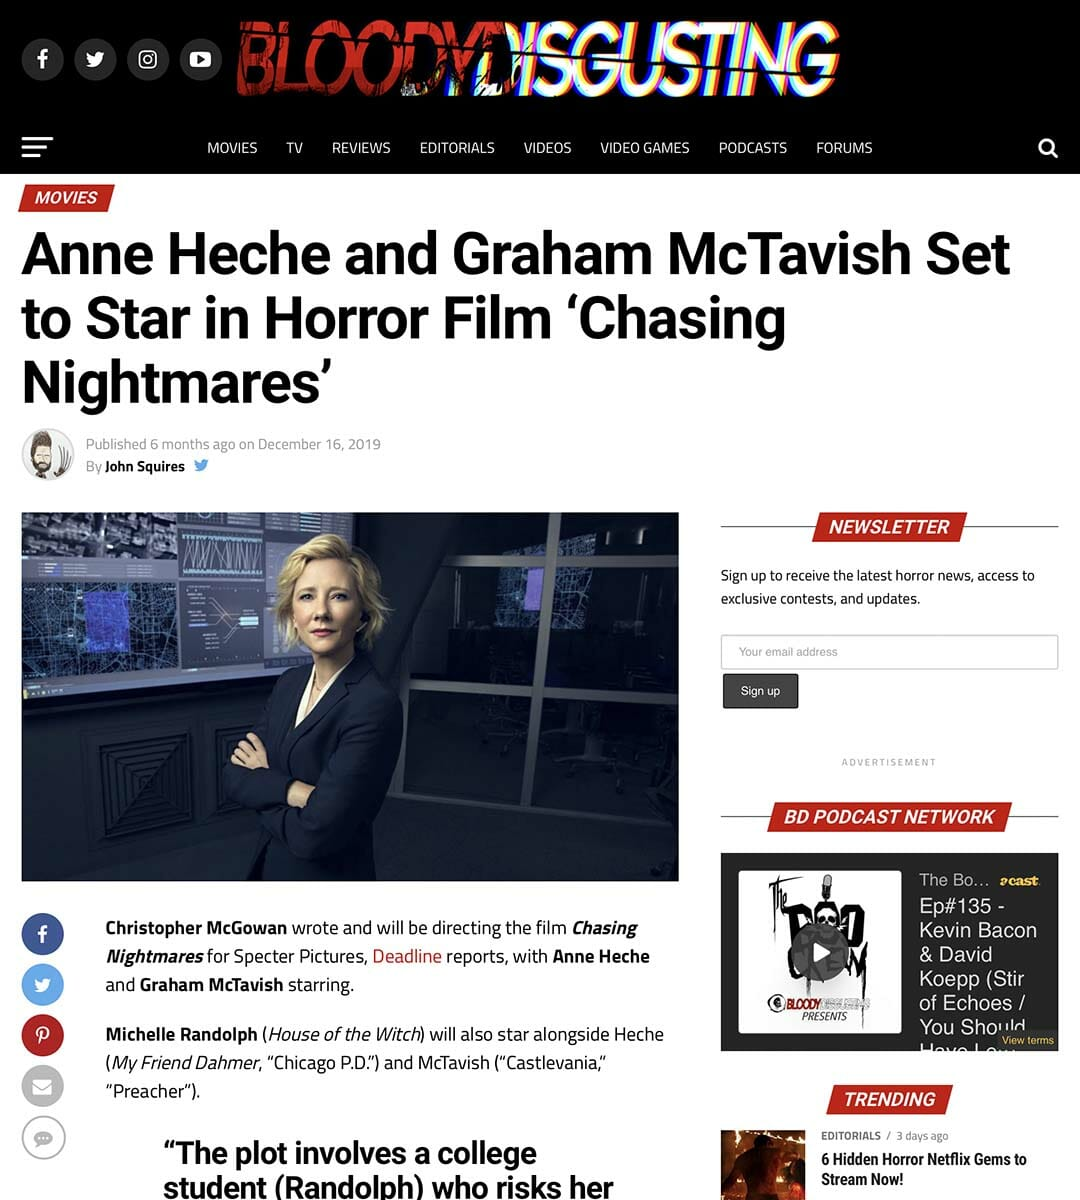 BLOODY DISGUSTING: Anne Heche and Graham McTavish Set to Star in Horror Film 'Chasing Nightmares'